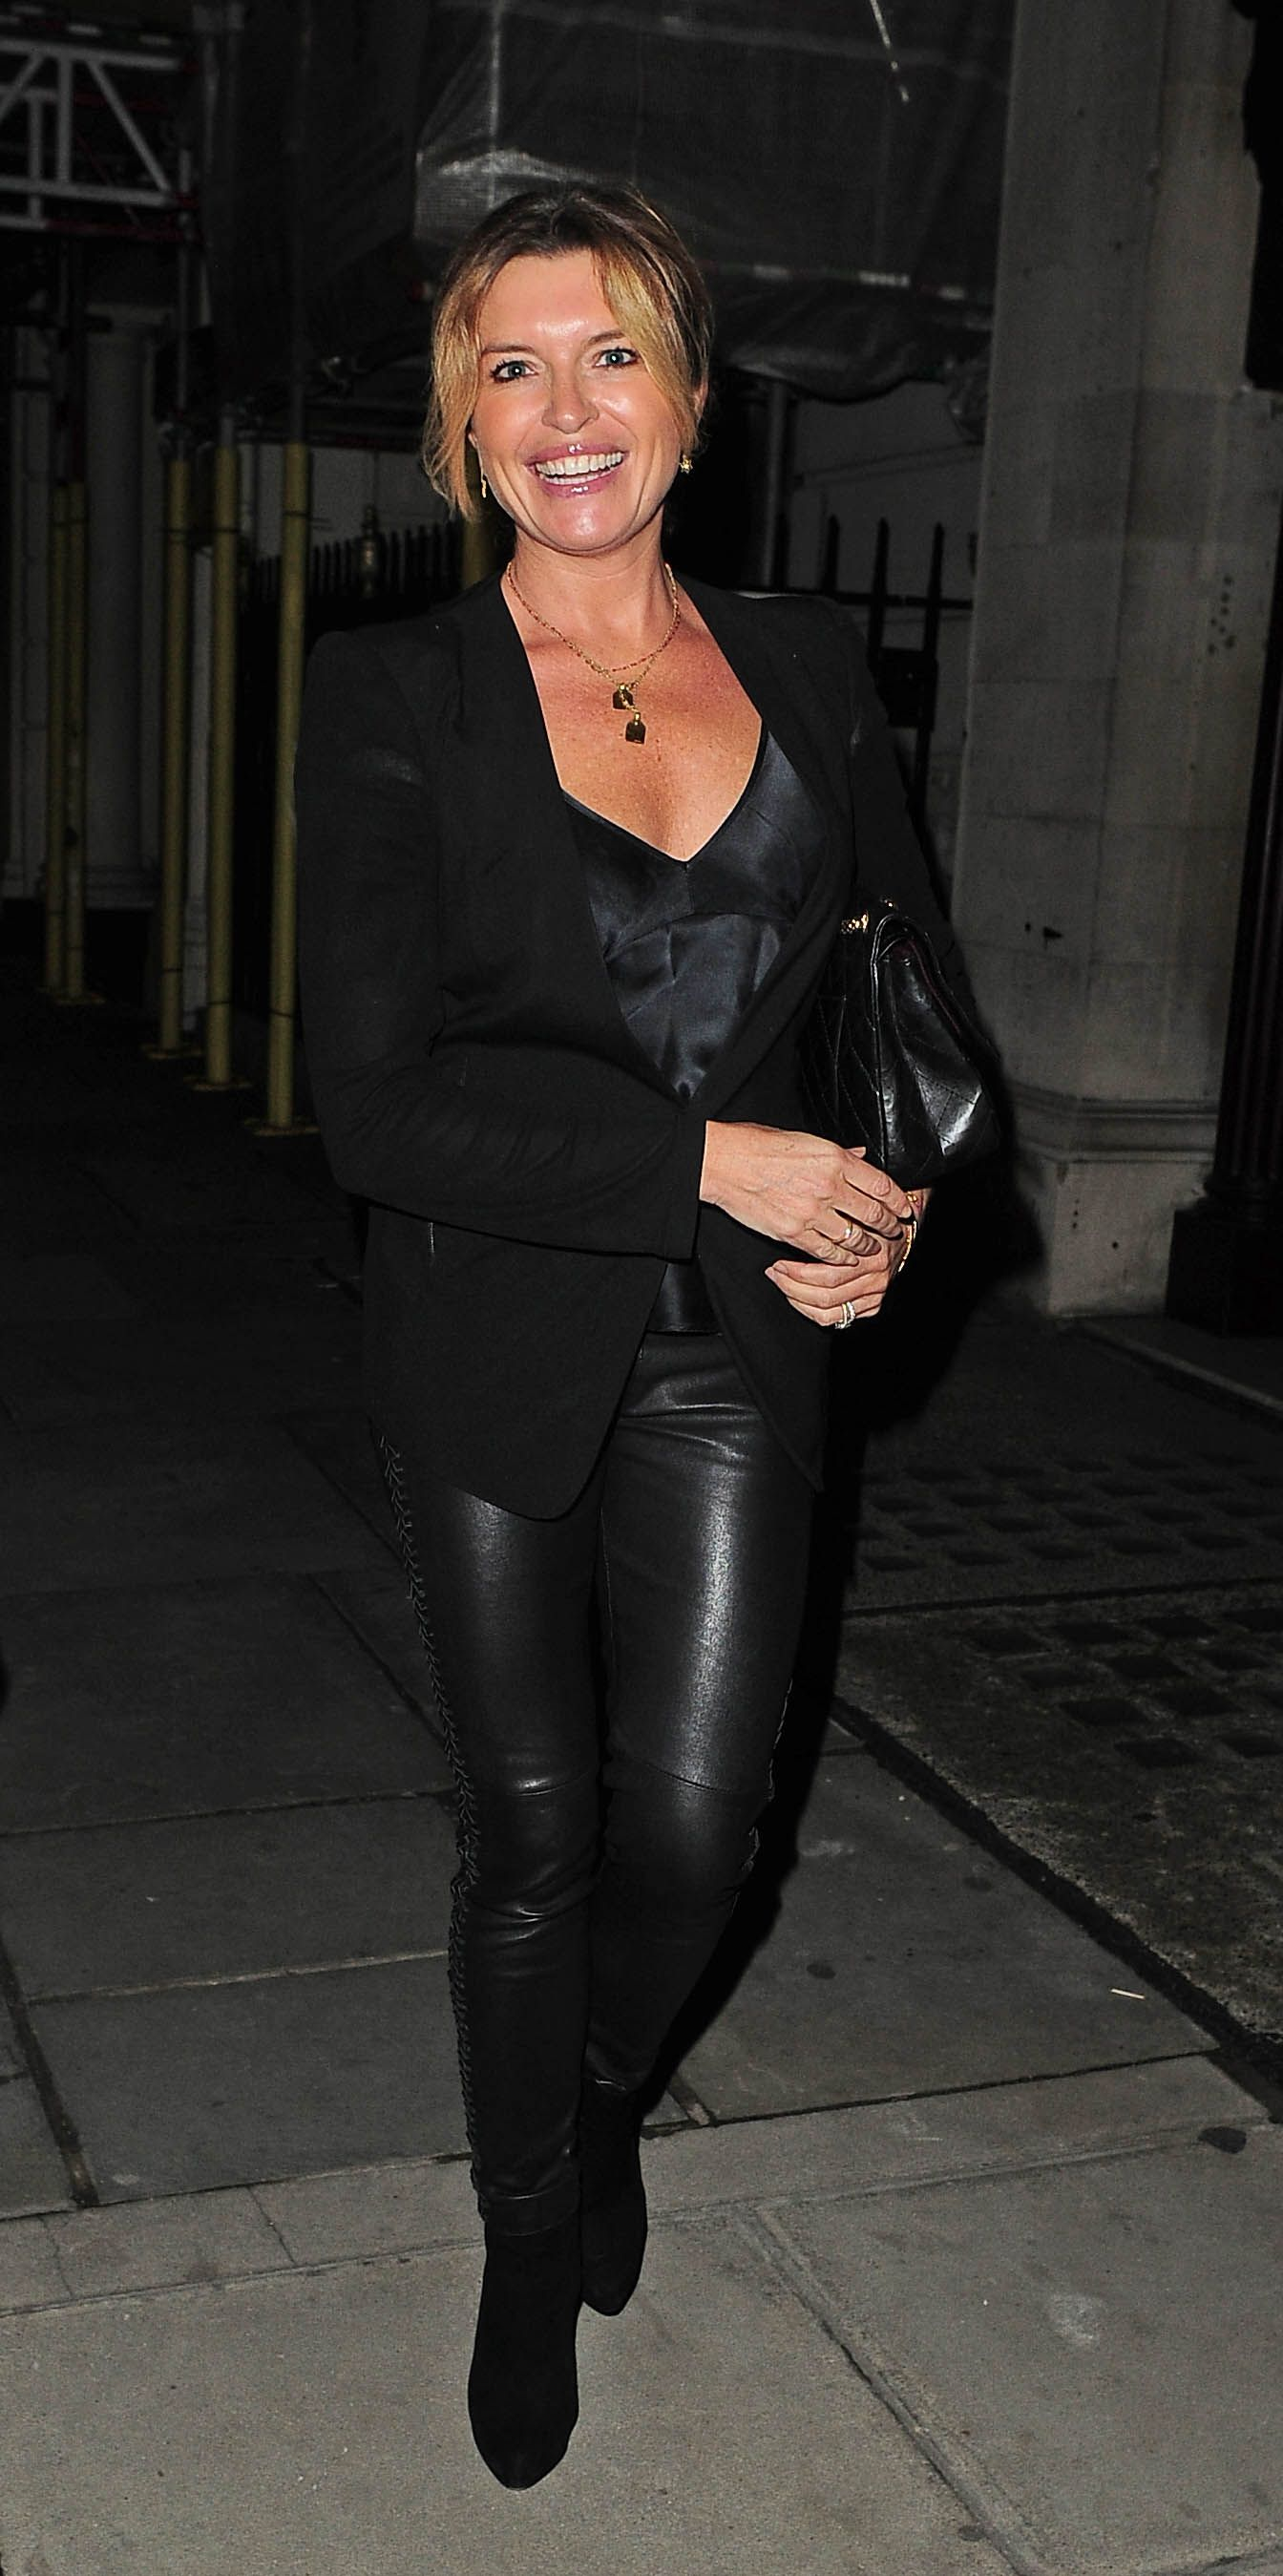 Tina Hobley attends Shalit OBE Party London